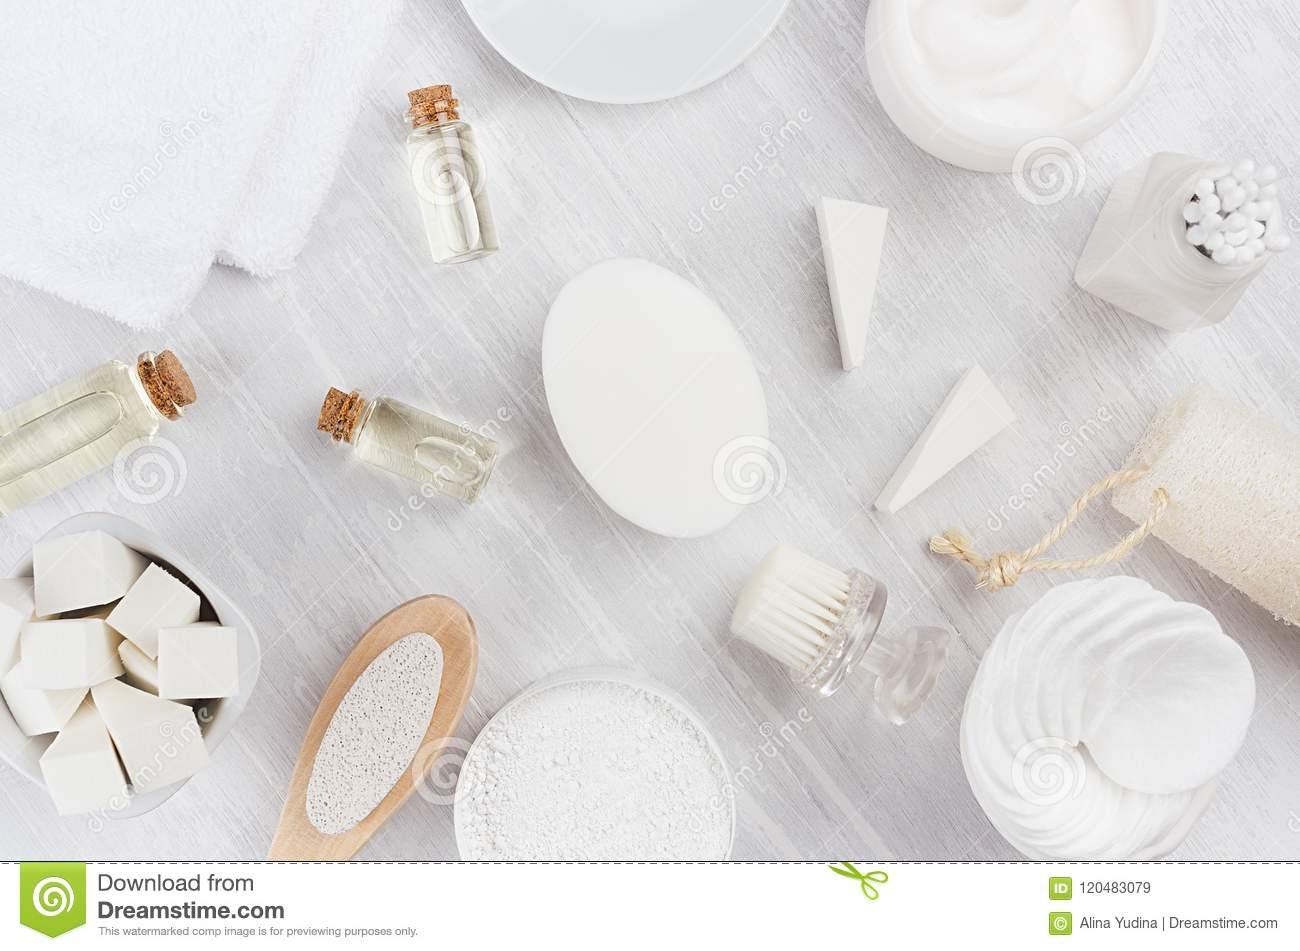 Fresh white natural cosmetics - white cream, oil, towel and bath accessories on soft light white wood table, flat lay.